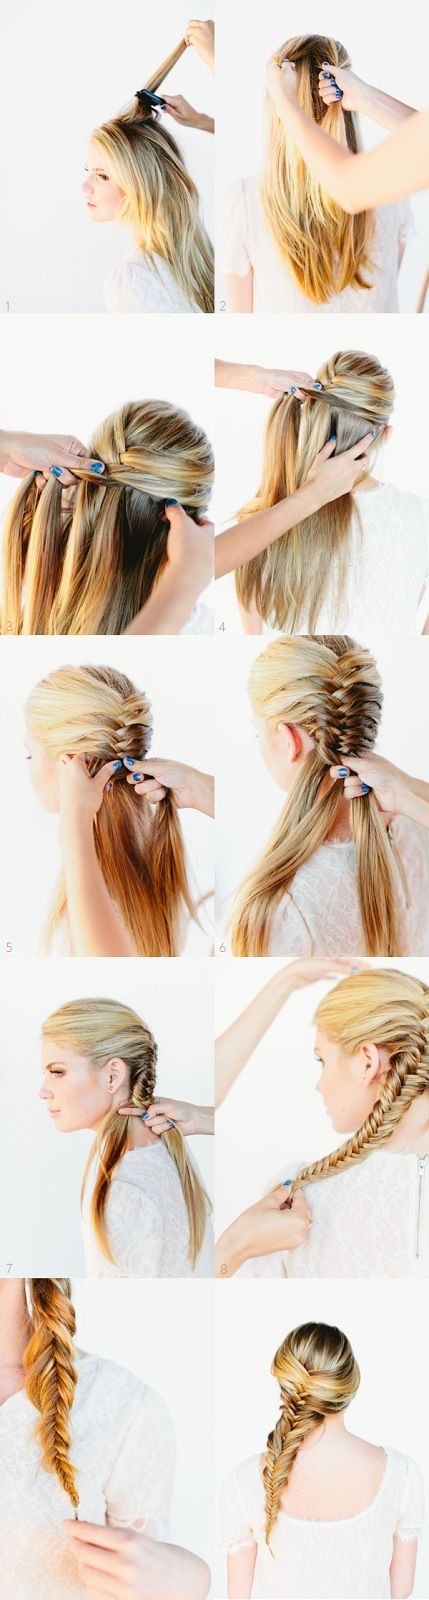 Braid ideas... I wish it were easier to practice on myself.